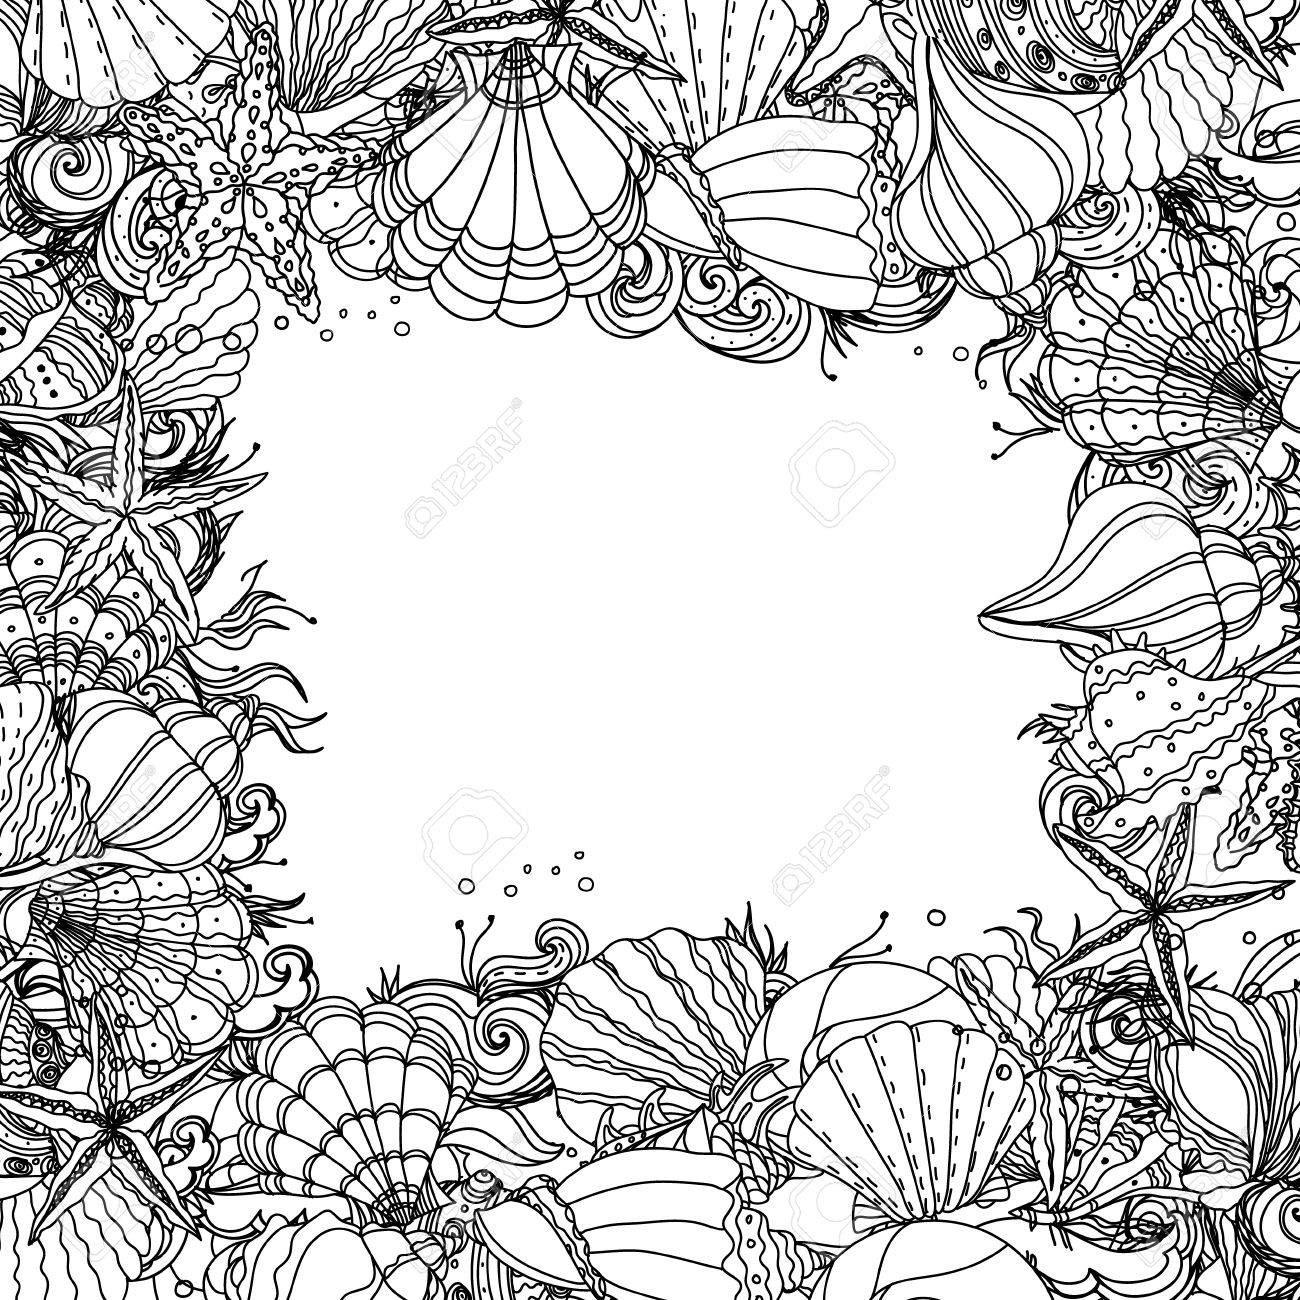 Ze zen inspiration coloring book - Vector Black And White Frame As Ornament Of Seashells Starfish Seaweed Could Be Use For Coloring Book In Zentangle Style